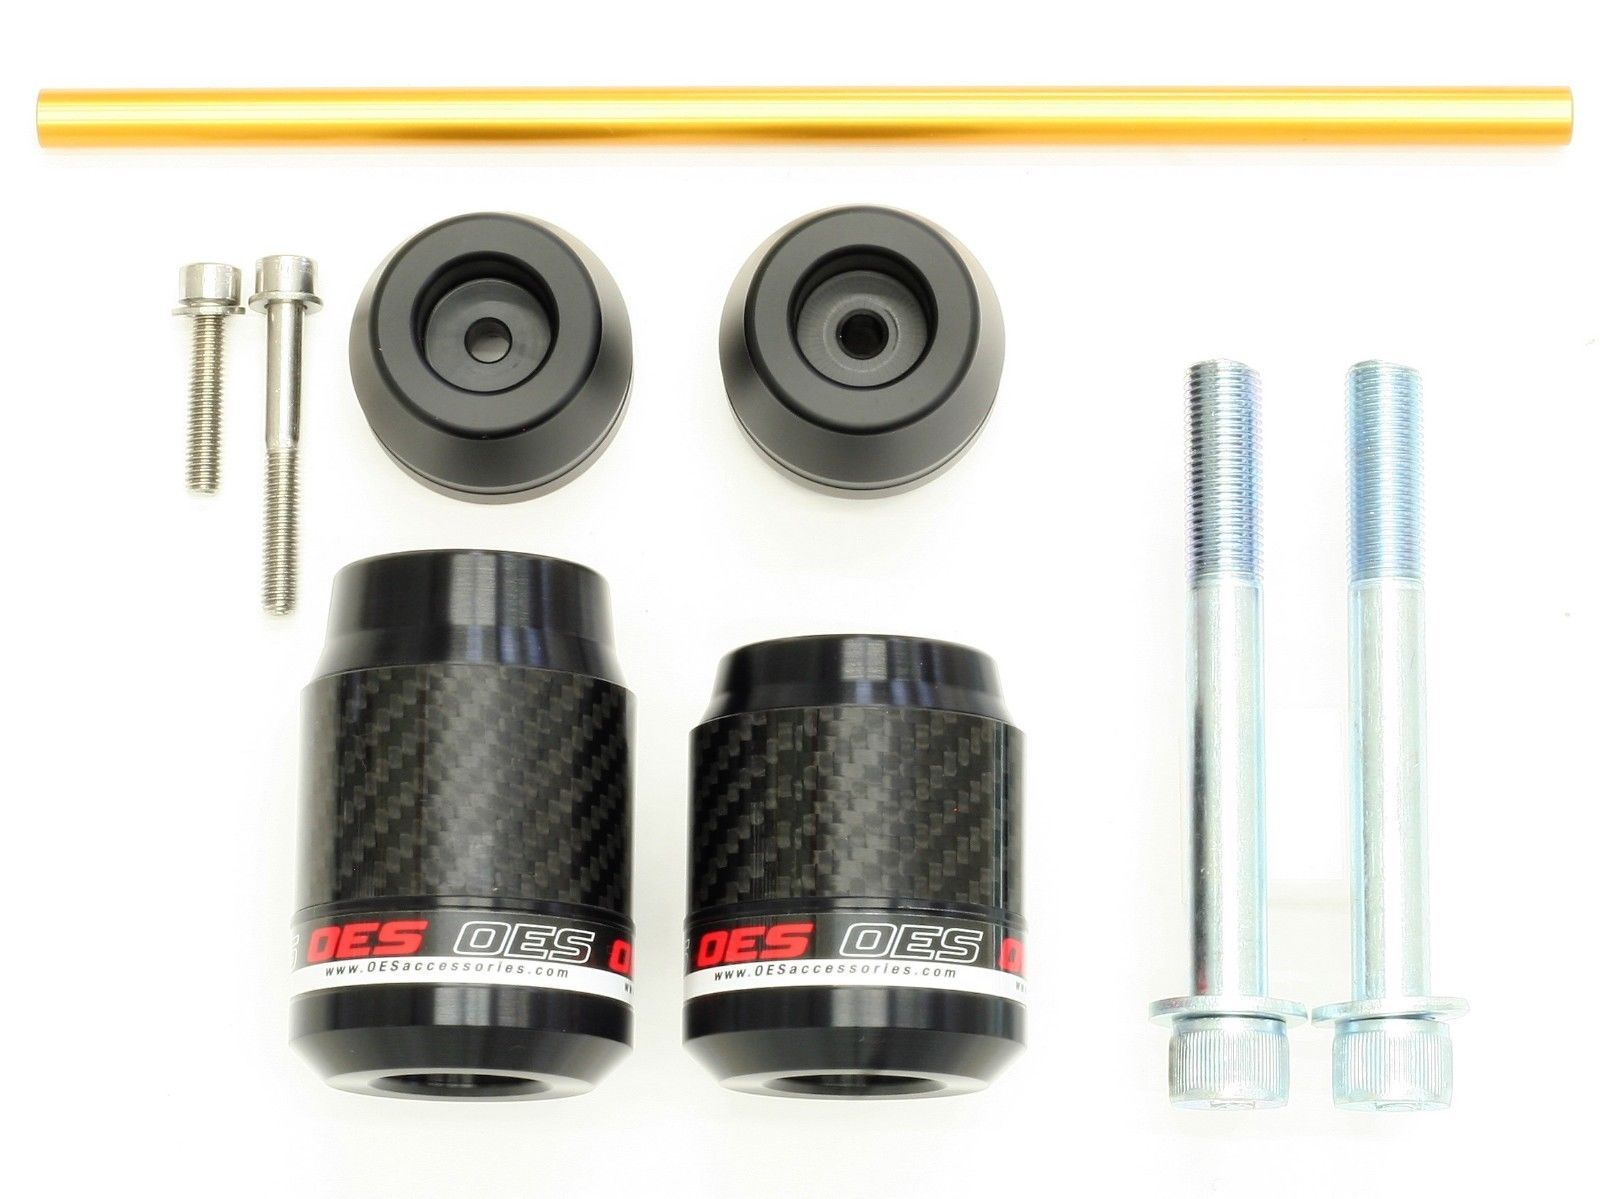 OES Carbon Frame Sliders and Fork Sliders 2019 Honda CB1000R No Cut Made In USA